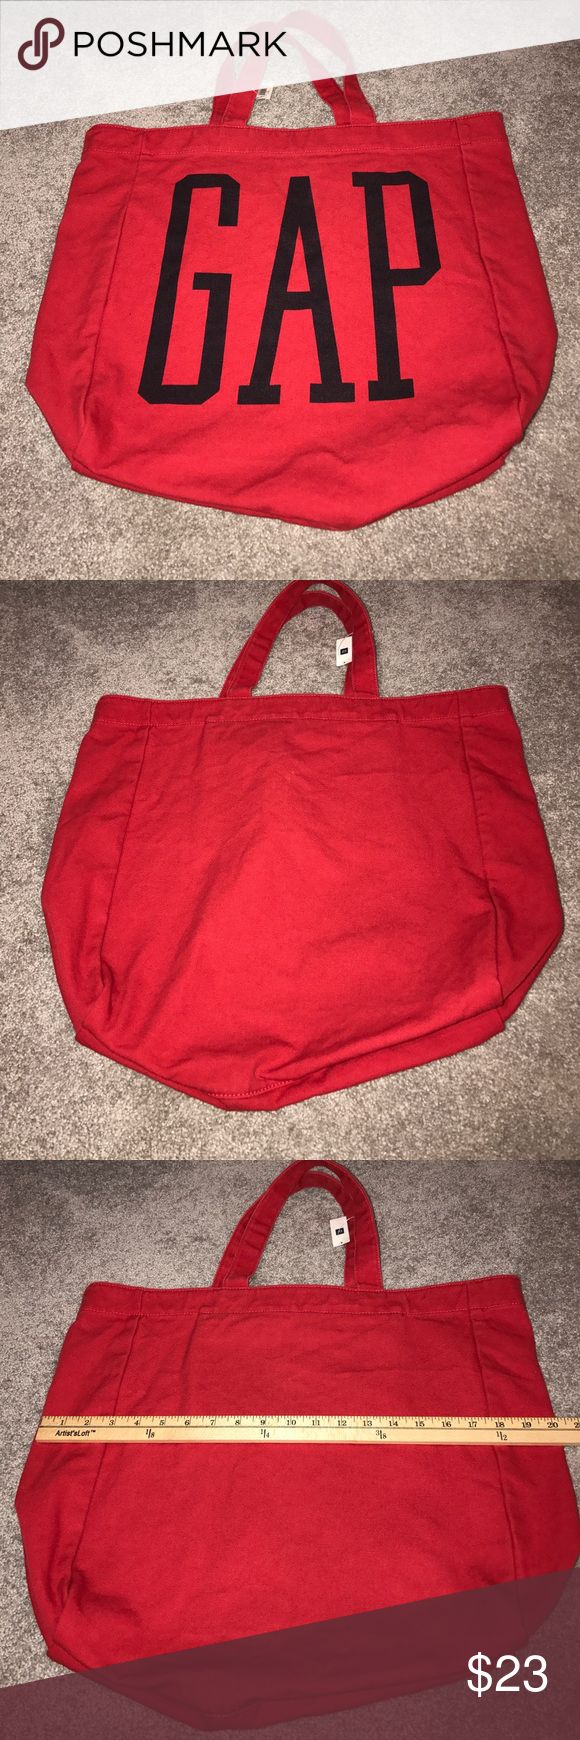 GAP TOTE BAG NWT RED/BLUE GAP TOTE BAG NWT RED/BLUE GAP Bags Totes